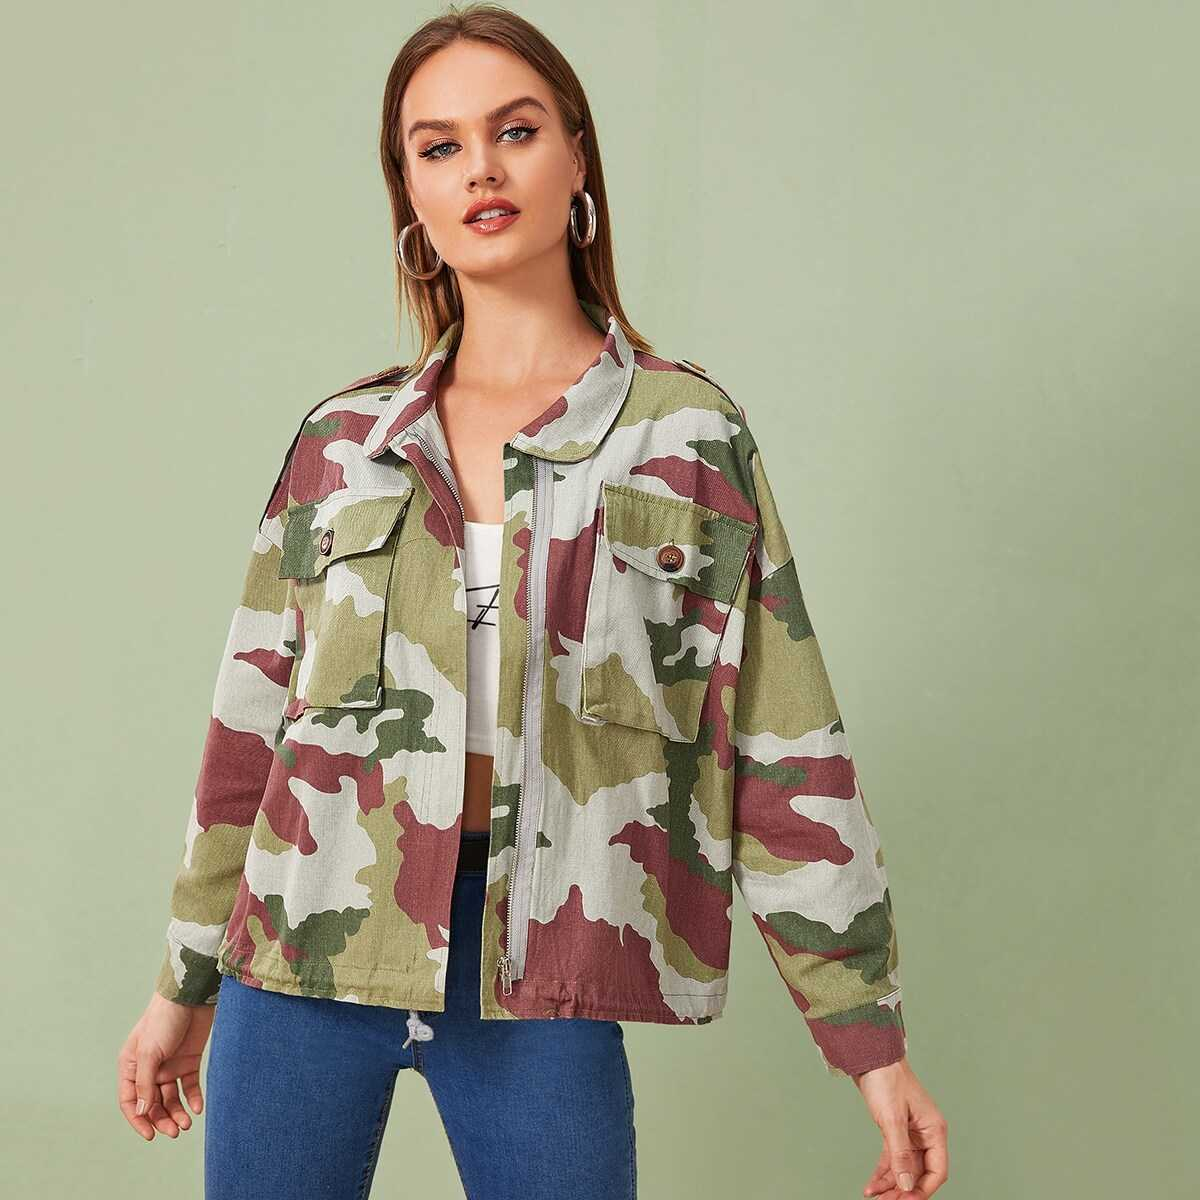 Camo Flap Pockets Cargo Coat in Multicolor by ROMWE on GOOFASH